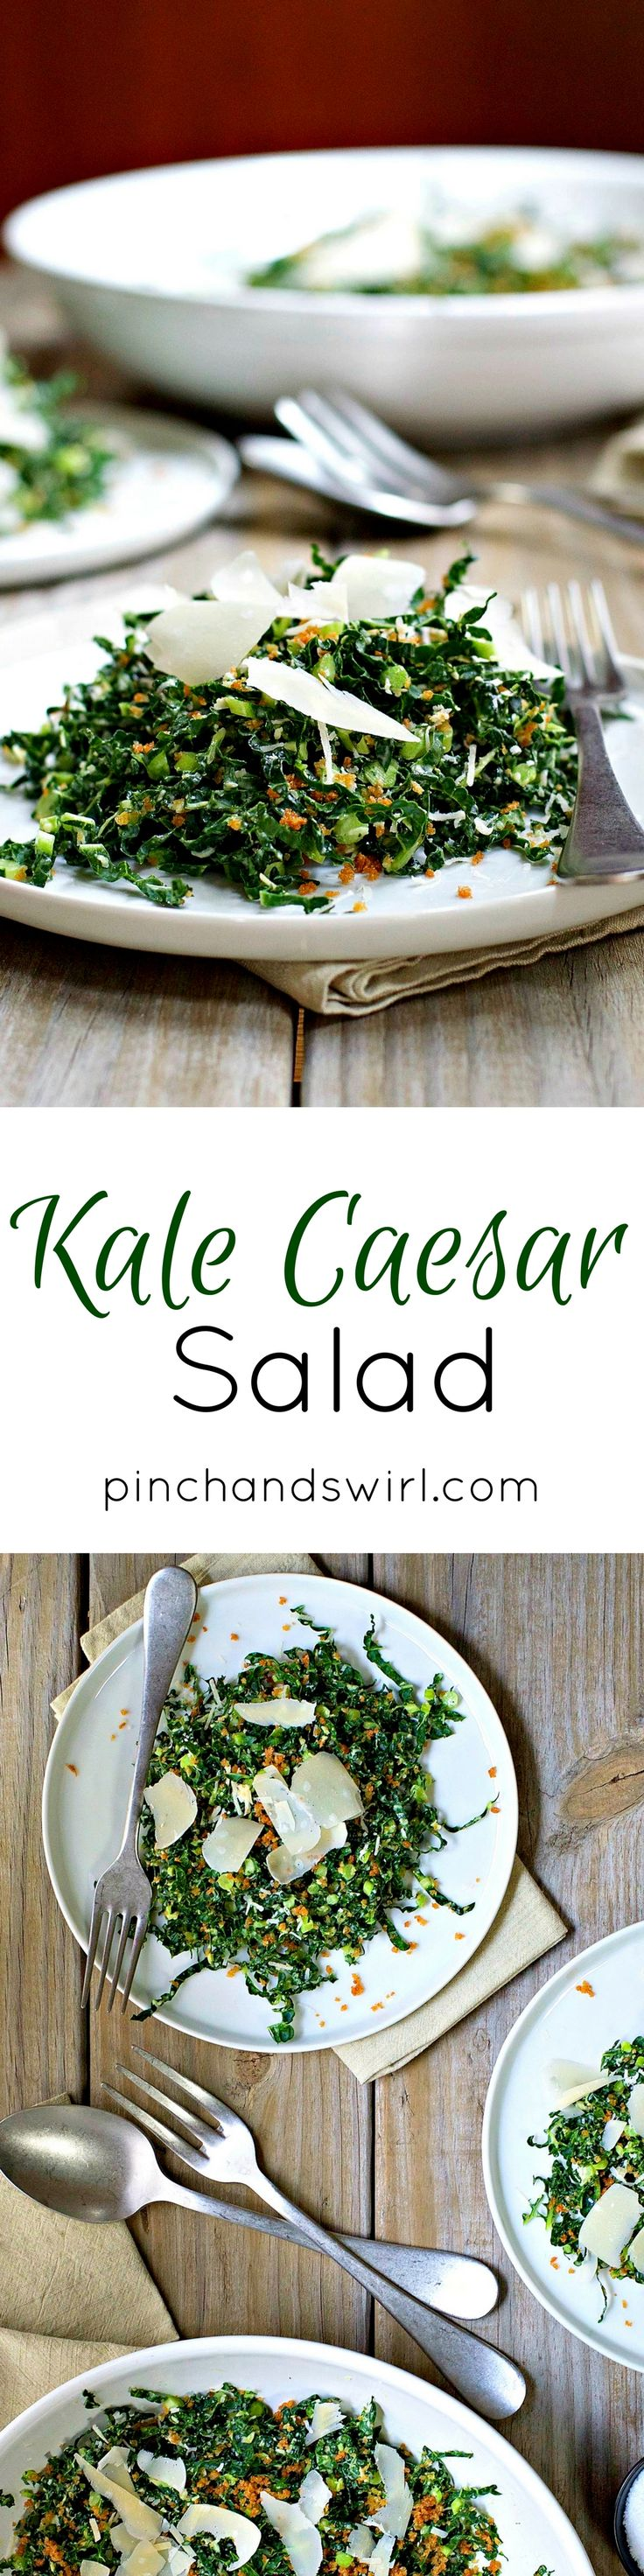 A fresh take on Kale Caesar Salad! Thin and tender ribbons of Italian kale tossed with a simple, creamy dressing (that doesn't require a raw egg), shredded parmesan cheese and crunchy garlic and olive oil breadcrumbs instead of croutons.